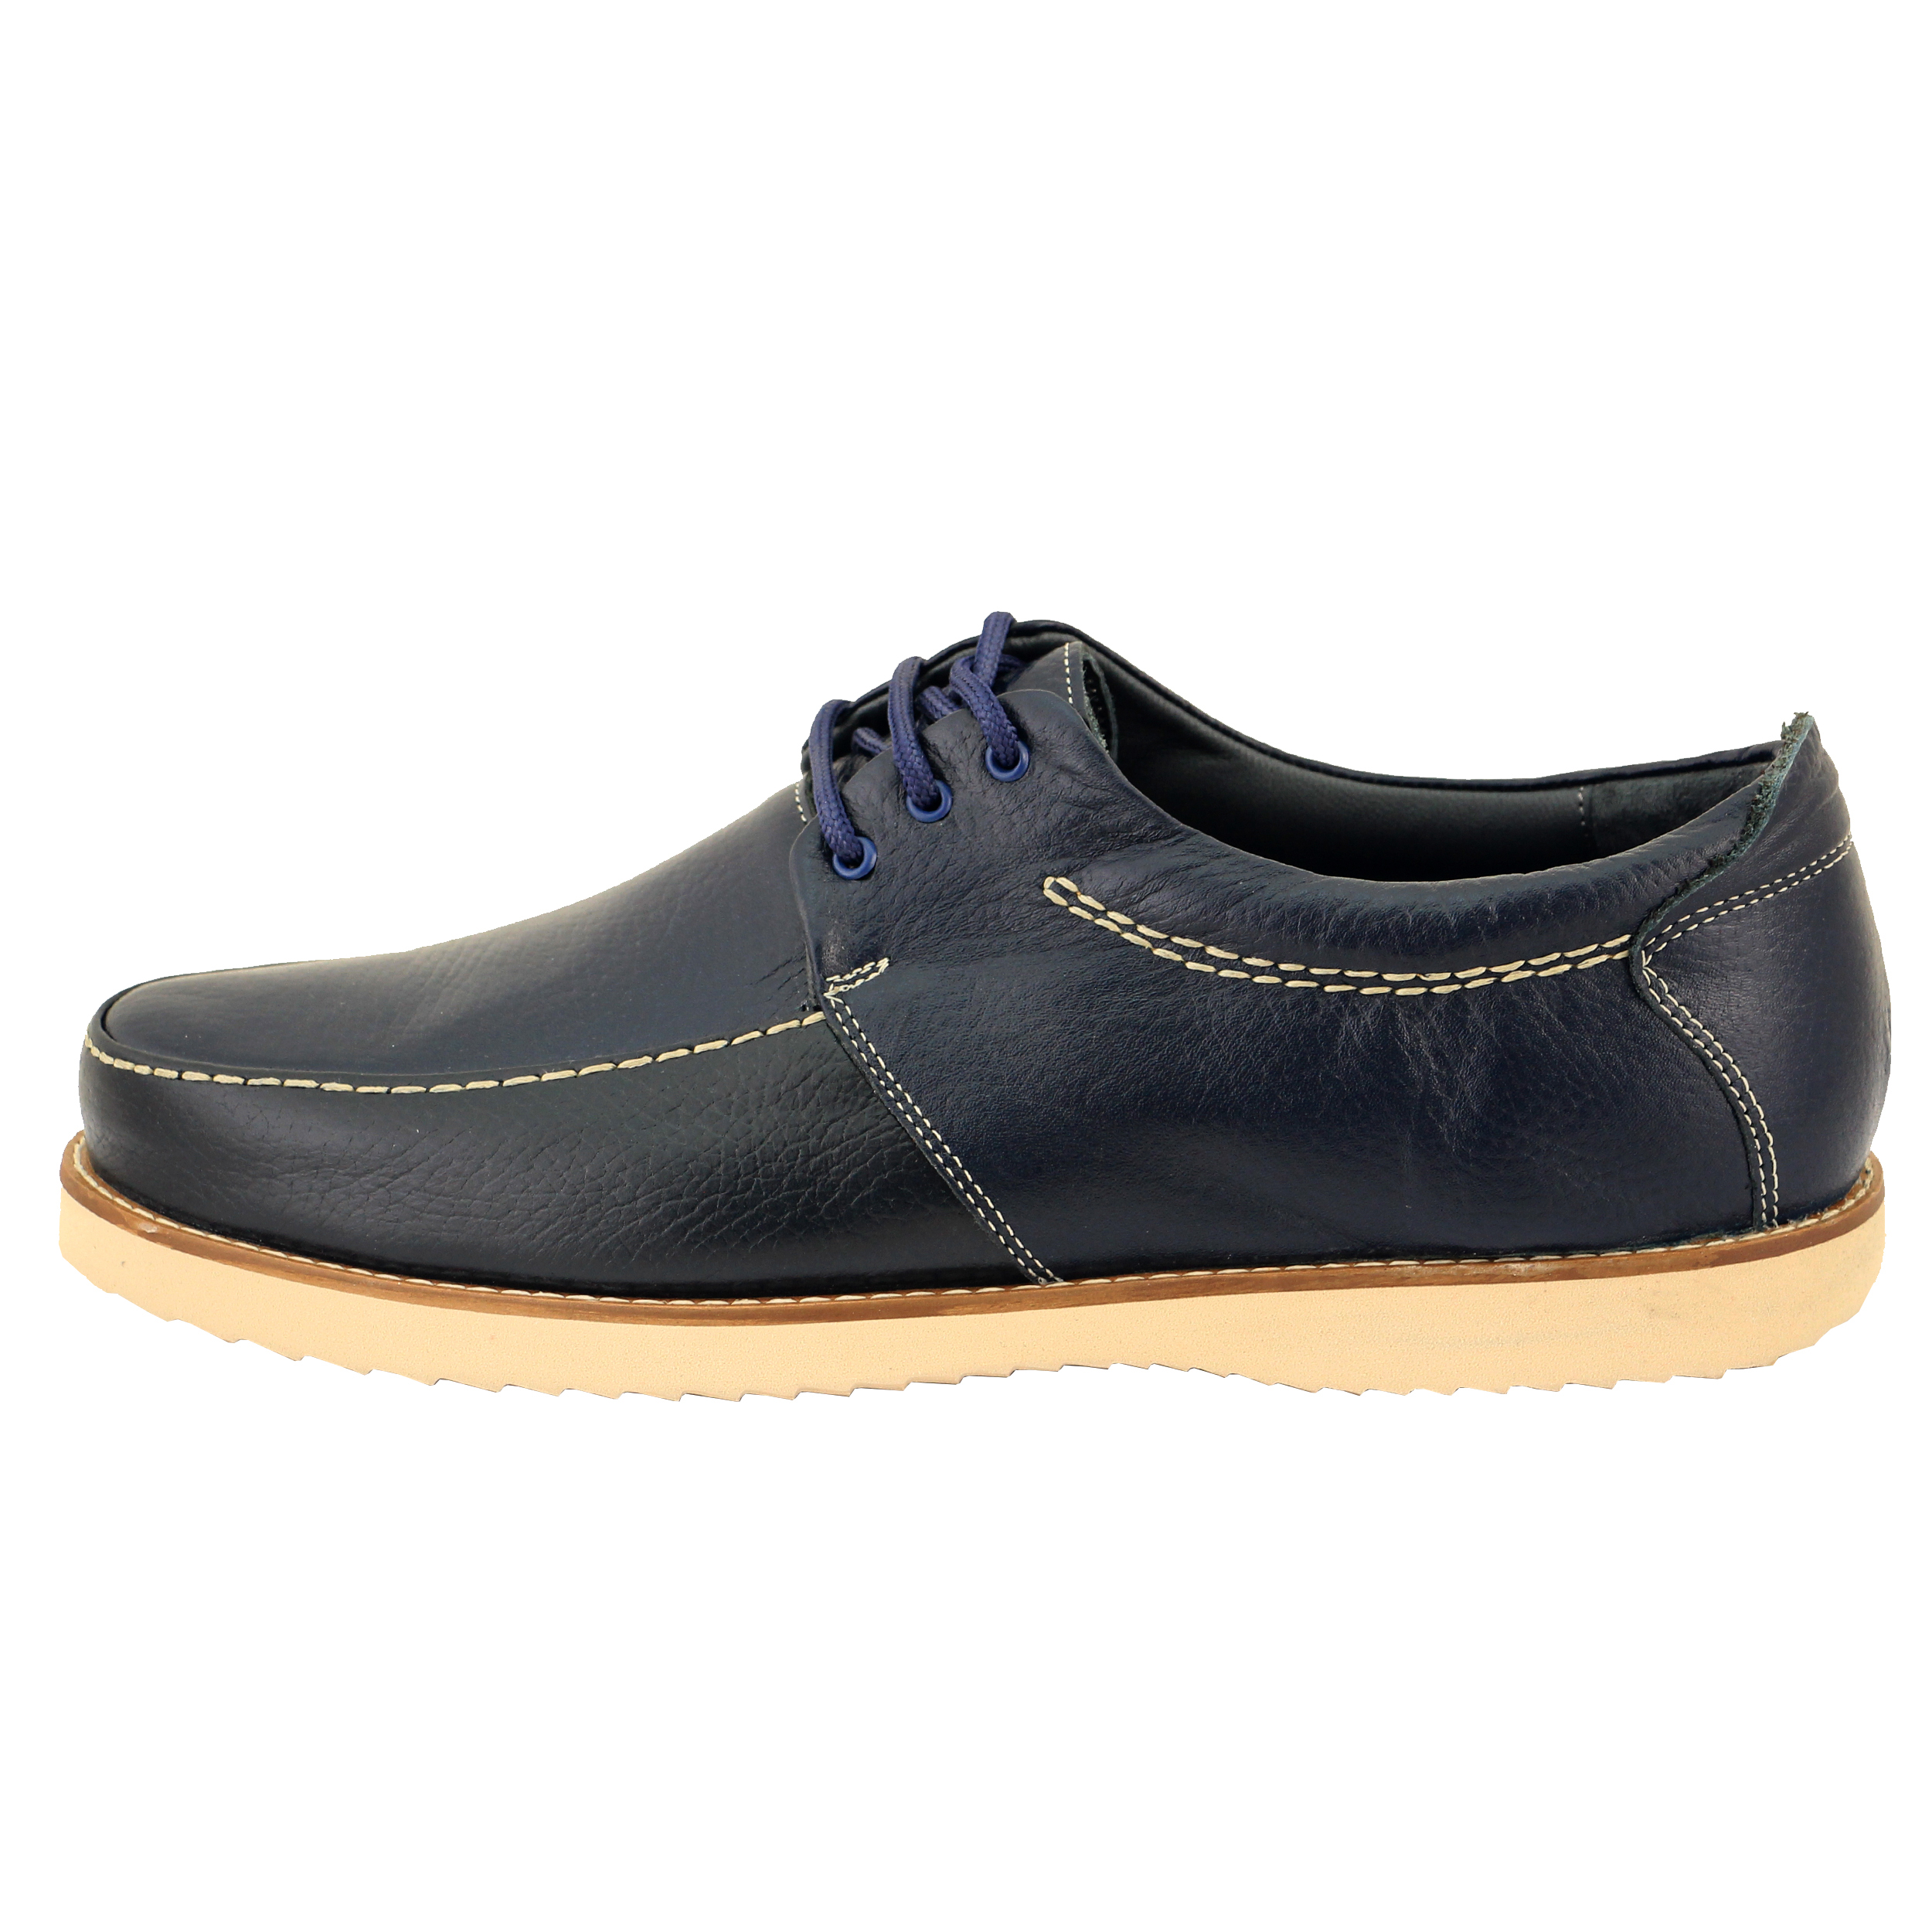 ADINCHARM leather men's casual shoes, DK101.sr Model